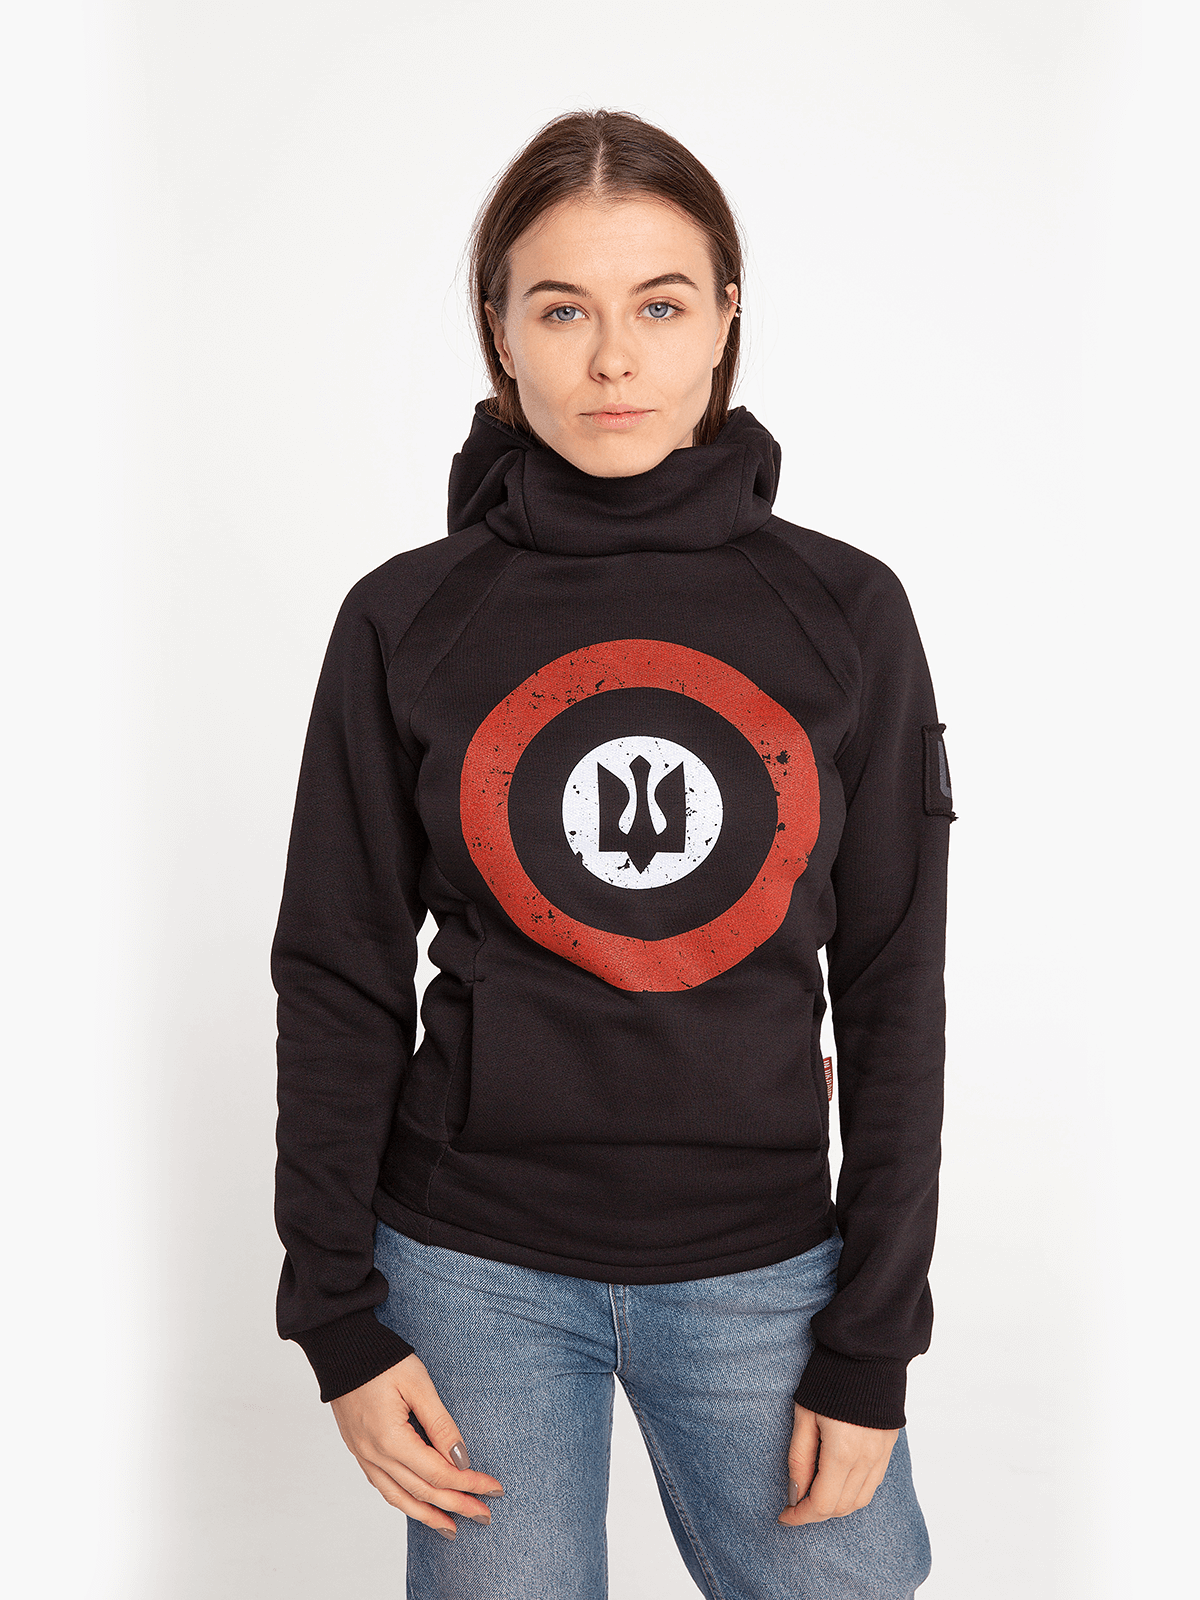 Women's Hoodie Roundel. Color black. Unisex hoodie (men's sizes).